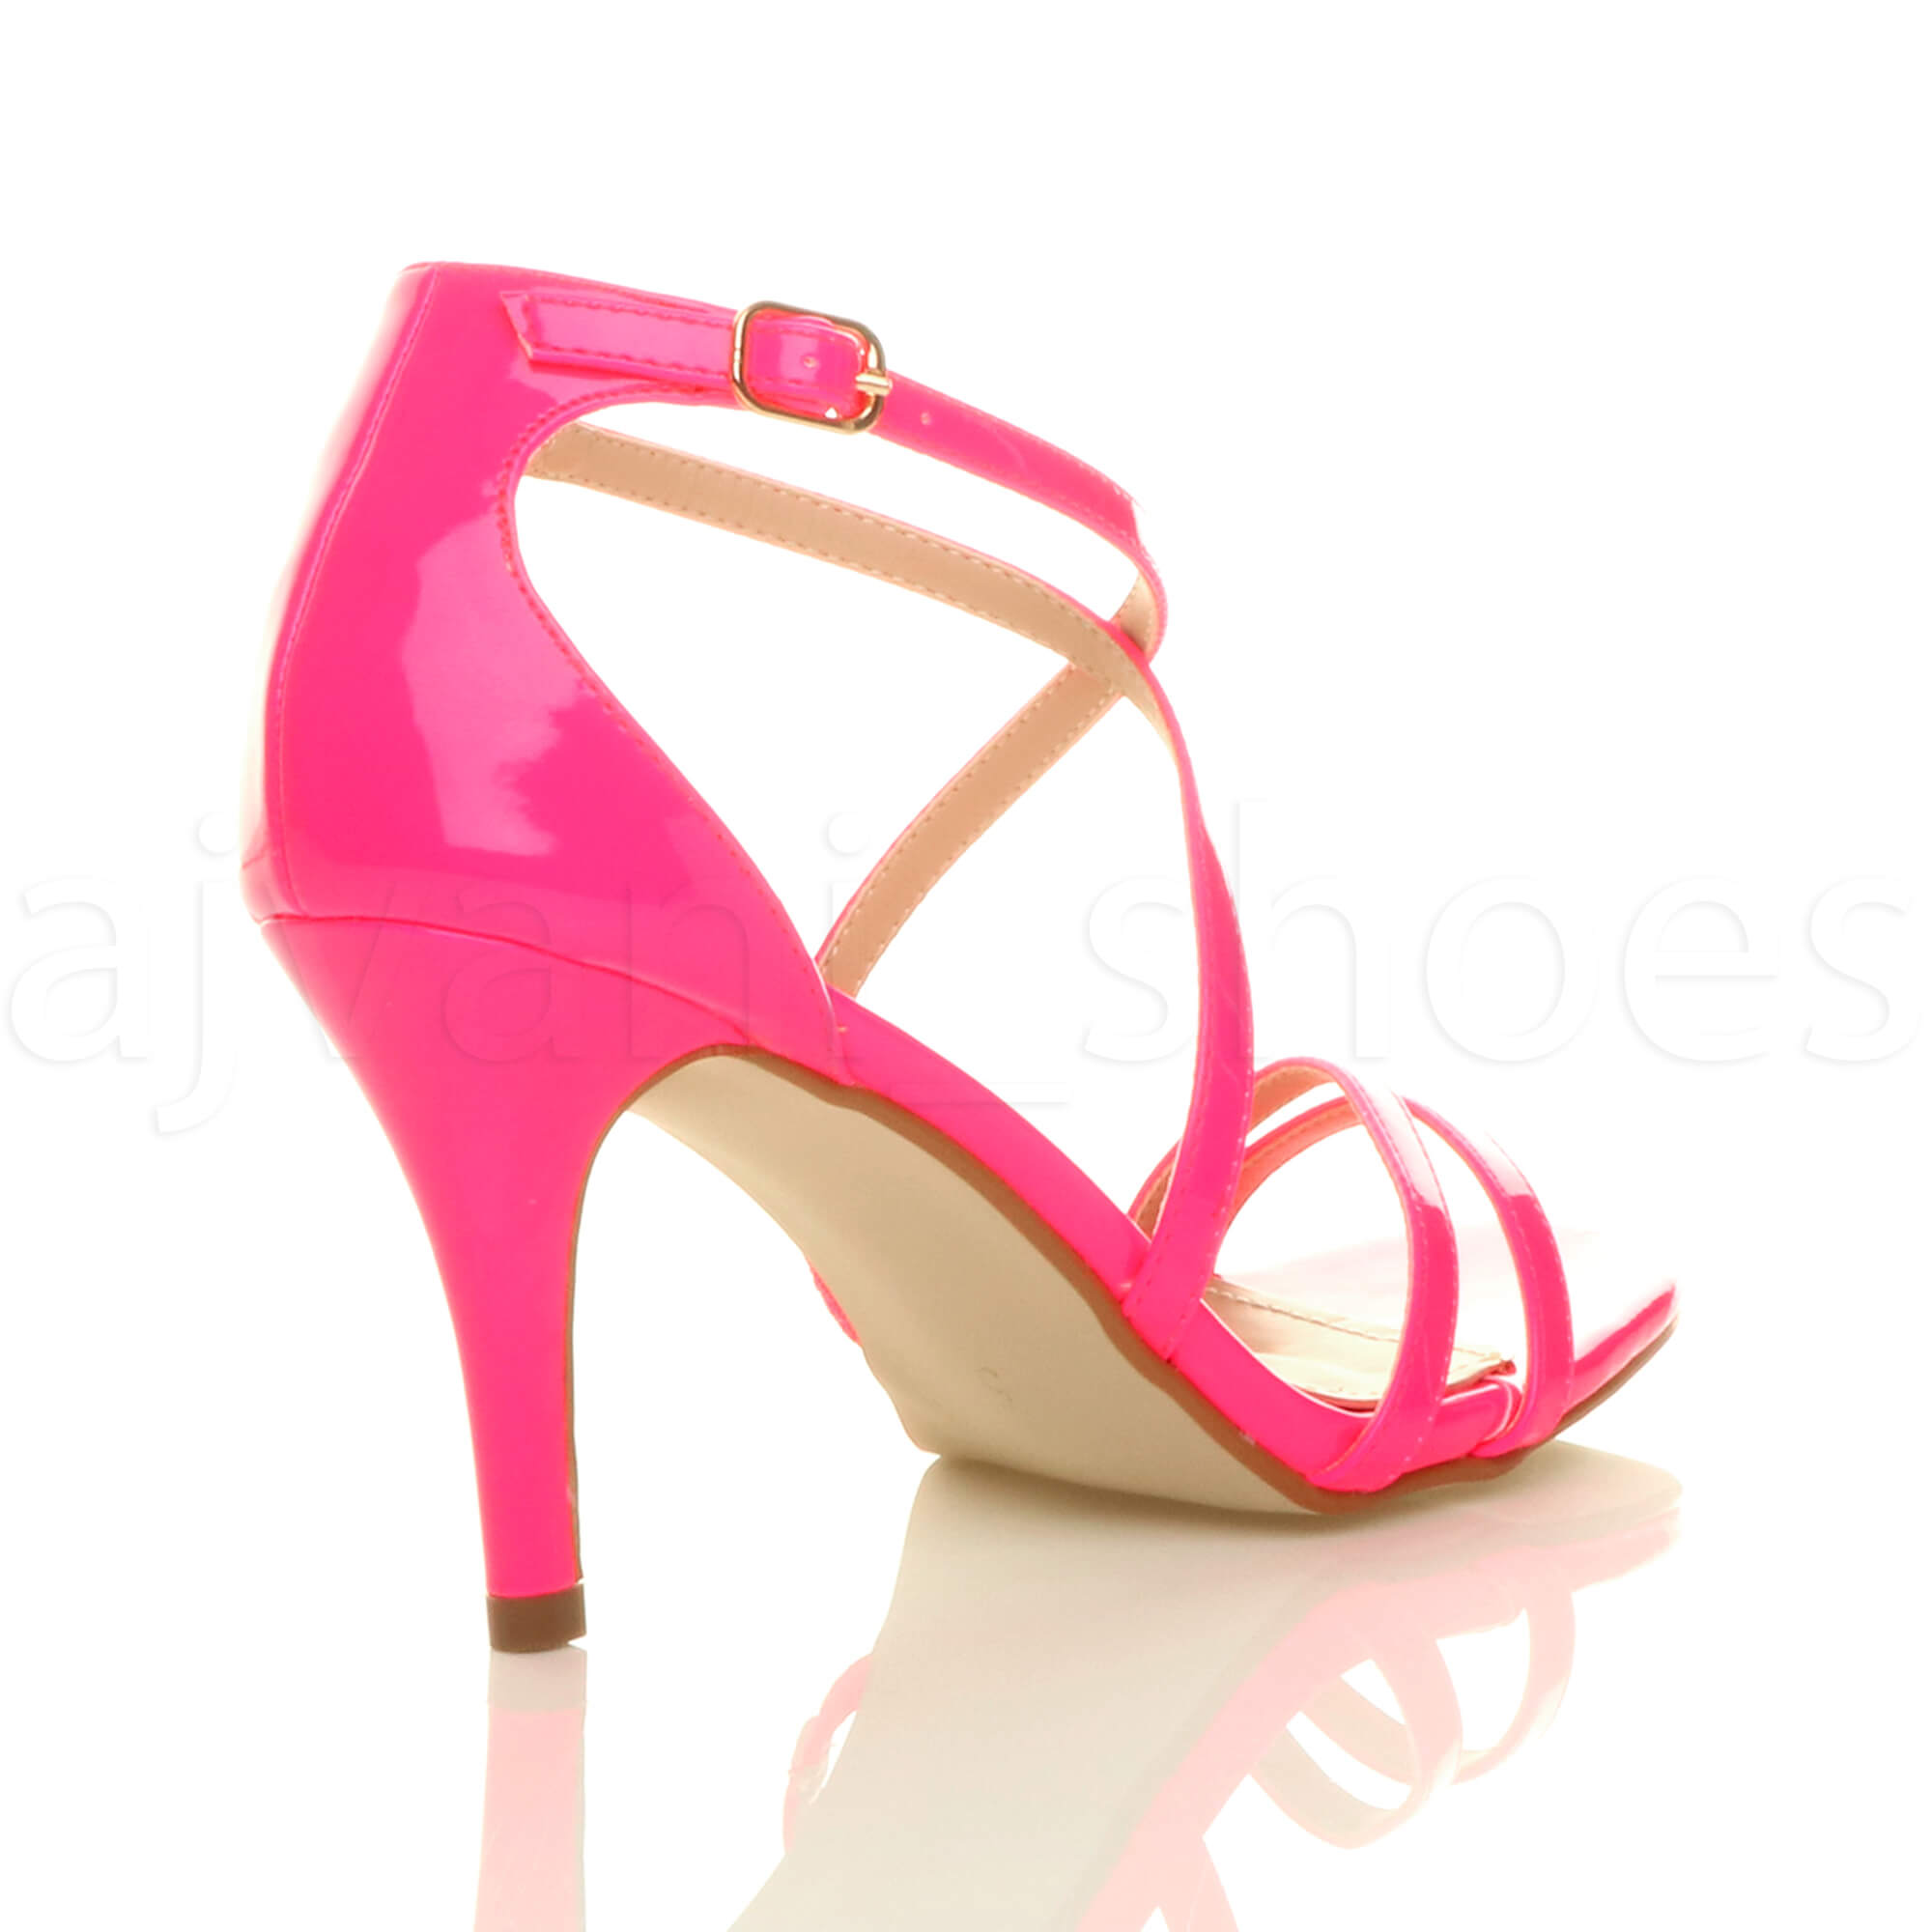 WOMENS-LADIES-MID-HIGH-HEEL-STRAPPY-CROSSOVER-WEDDING-PROM-SANDALS-SHOES-SIZE thumbnail 96